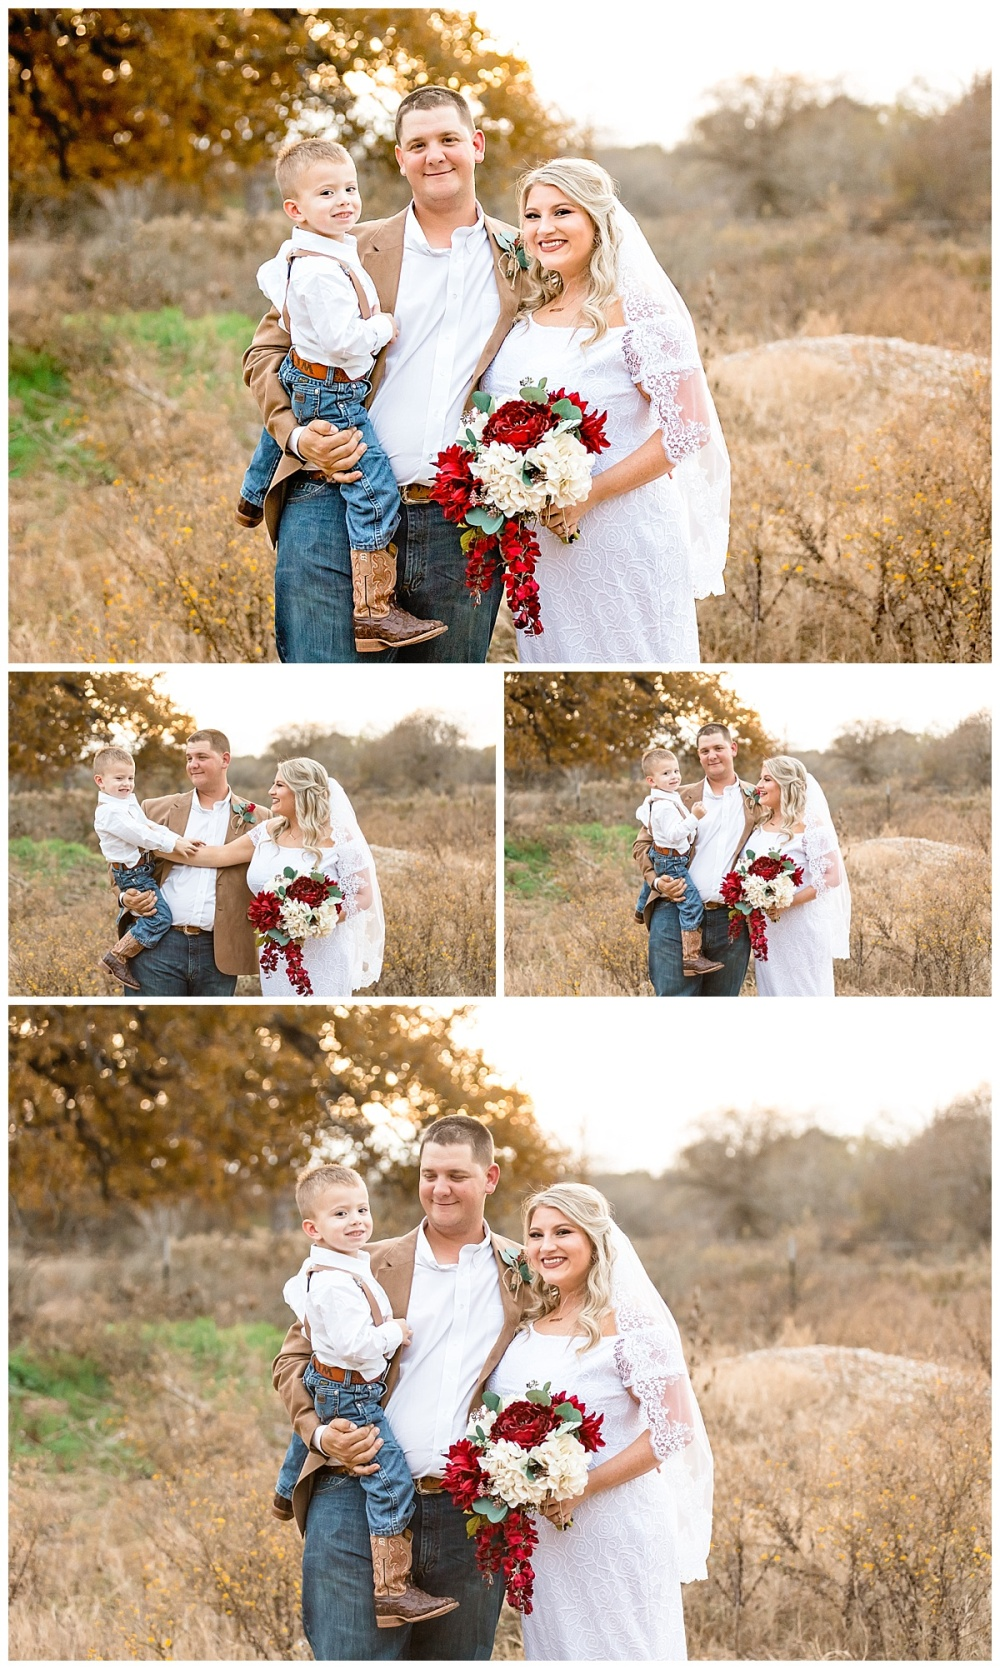 Wedding-Photographer-LaVernia-Texas-Ceremony-Under-the-Trees-Bride-Groom-Fall-McDonald-Carly-Barton-Photography_0004.jpg